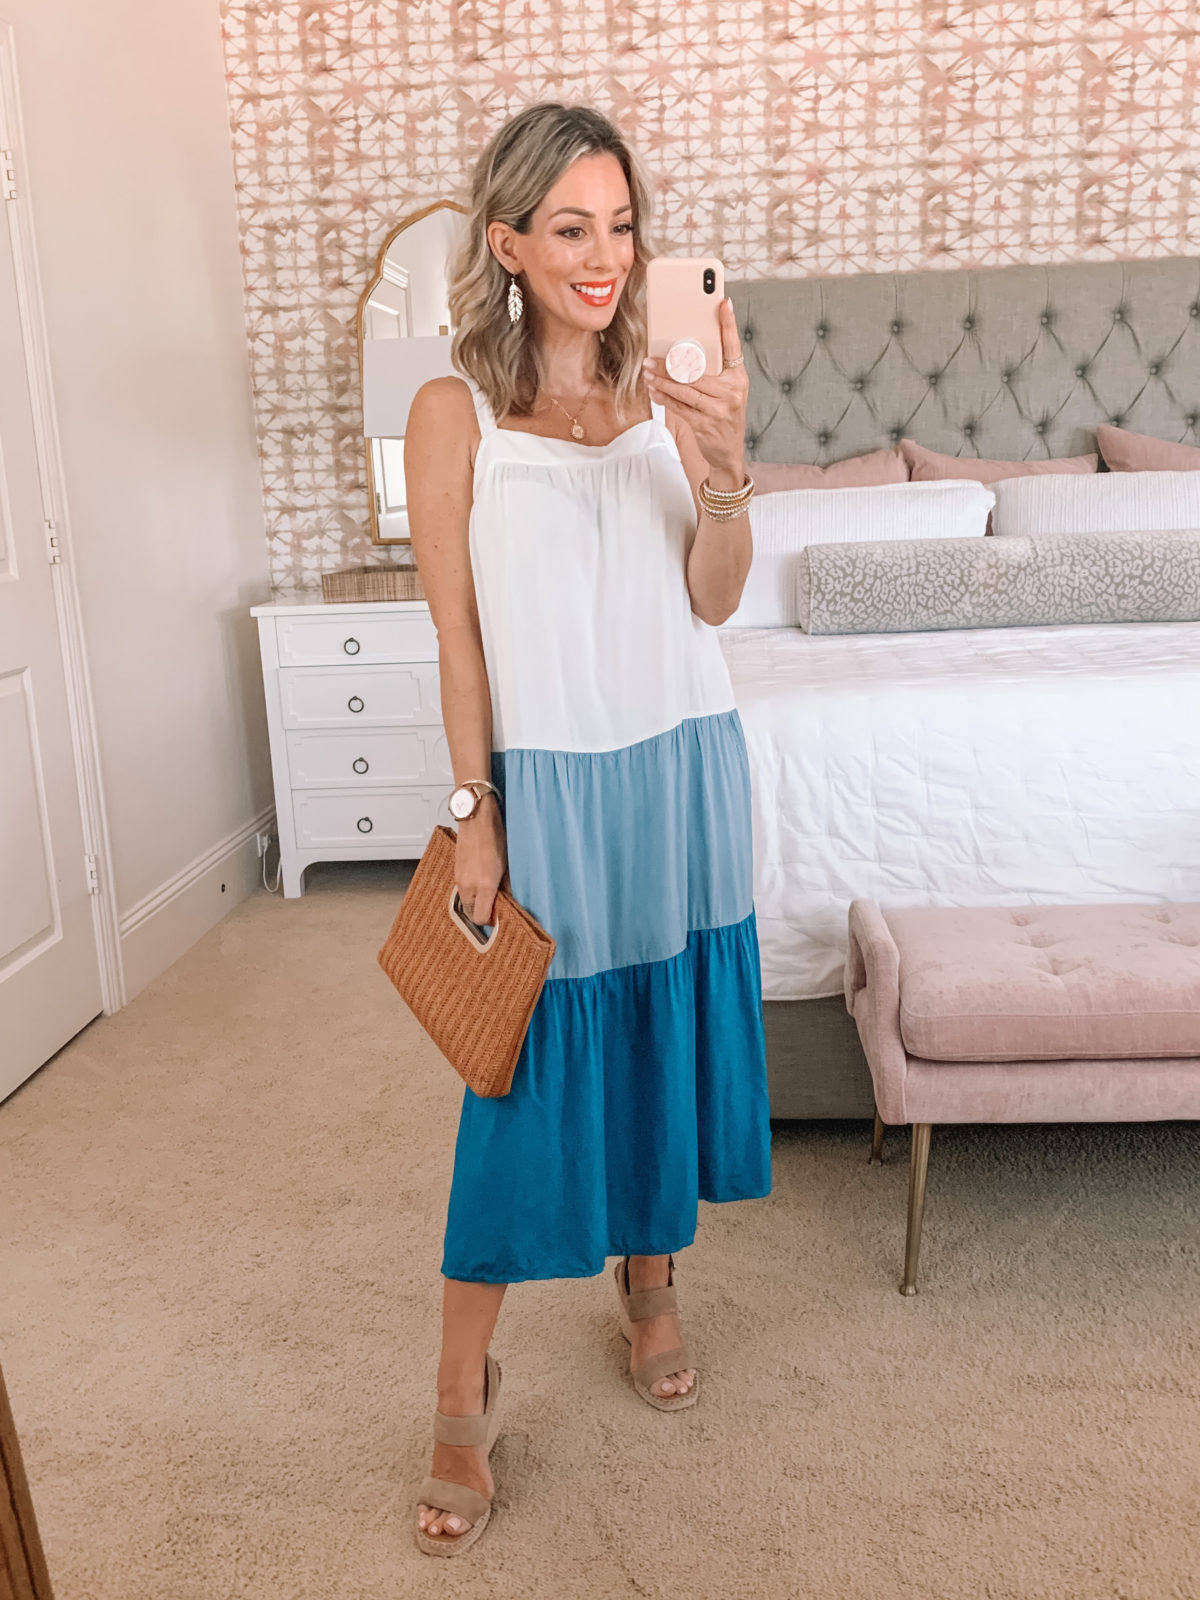 Amazon Fashion Faves, Blue Colorblock dress and Wedges